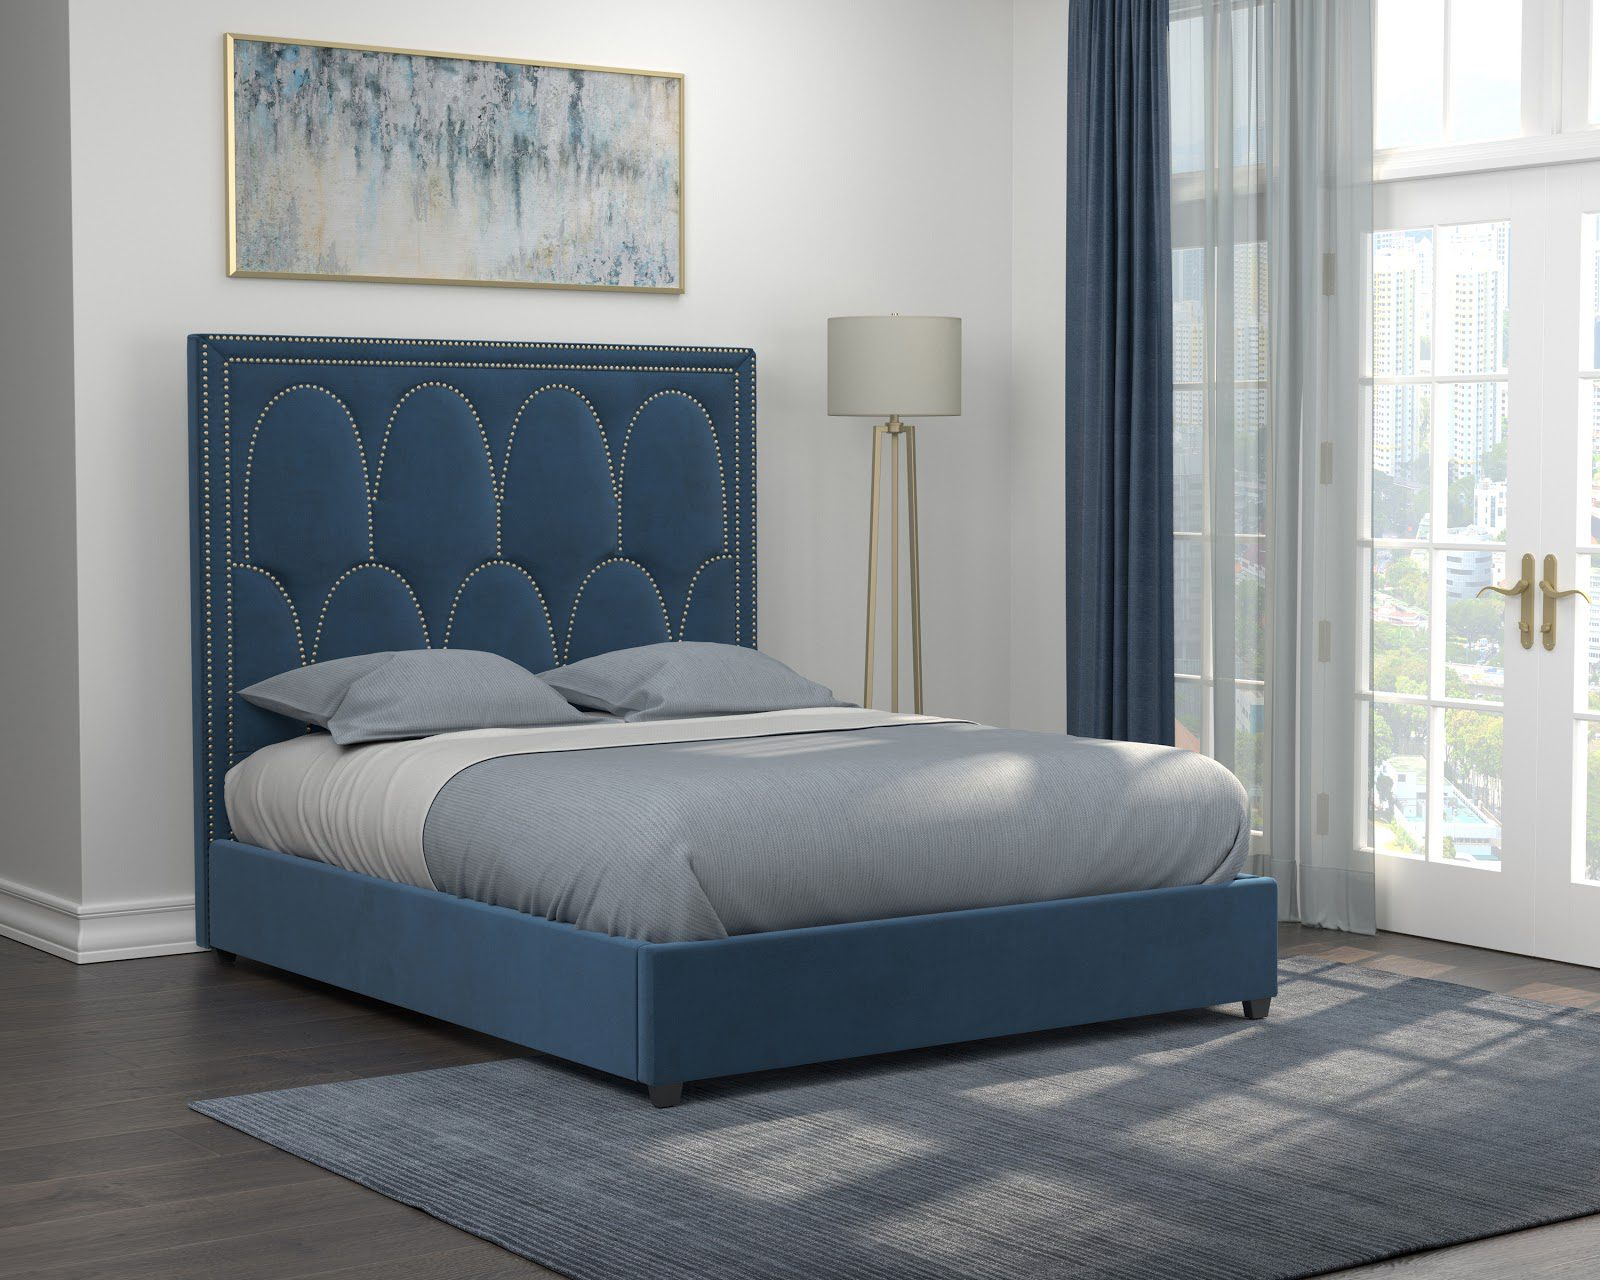 Small master bedroom ideas: Bowfield queen velvet upholstered bed blue